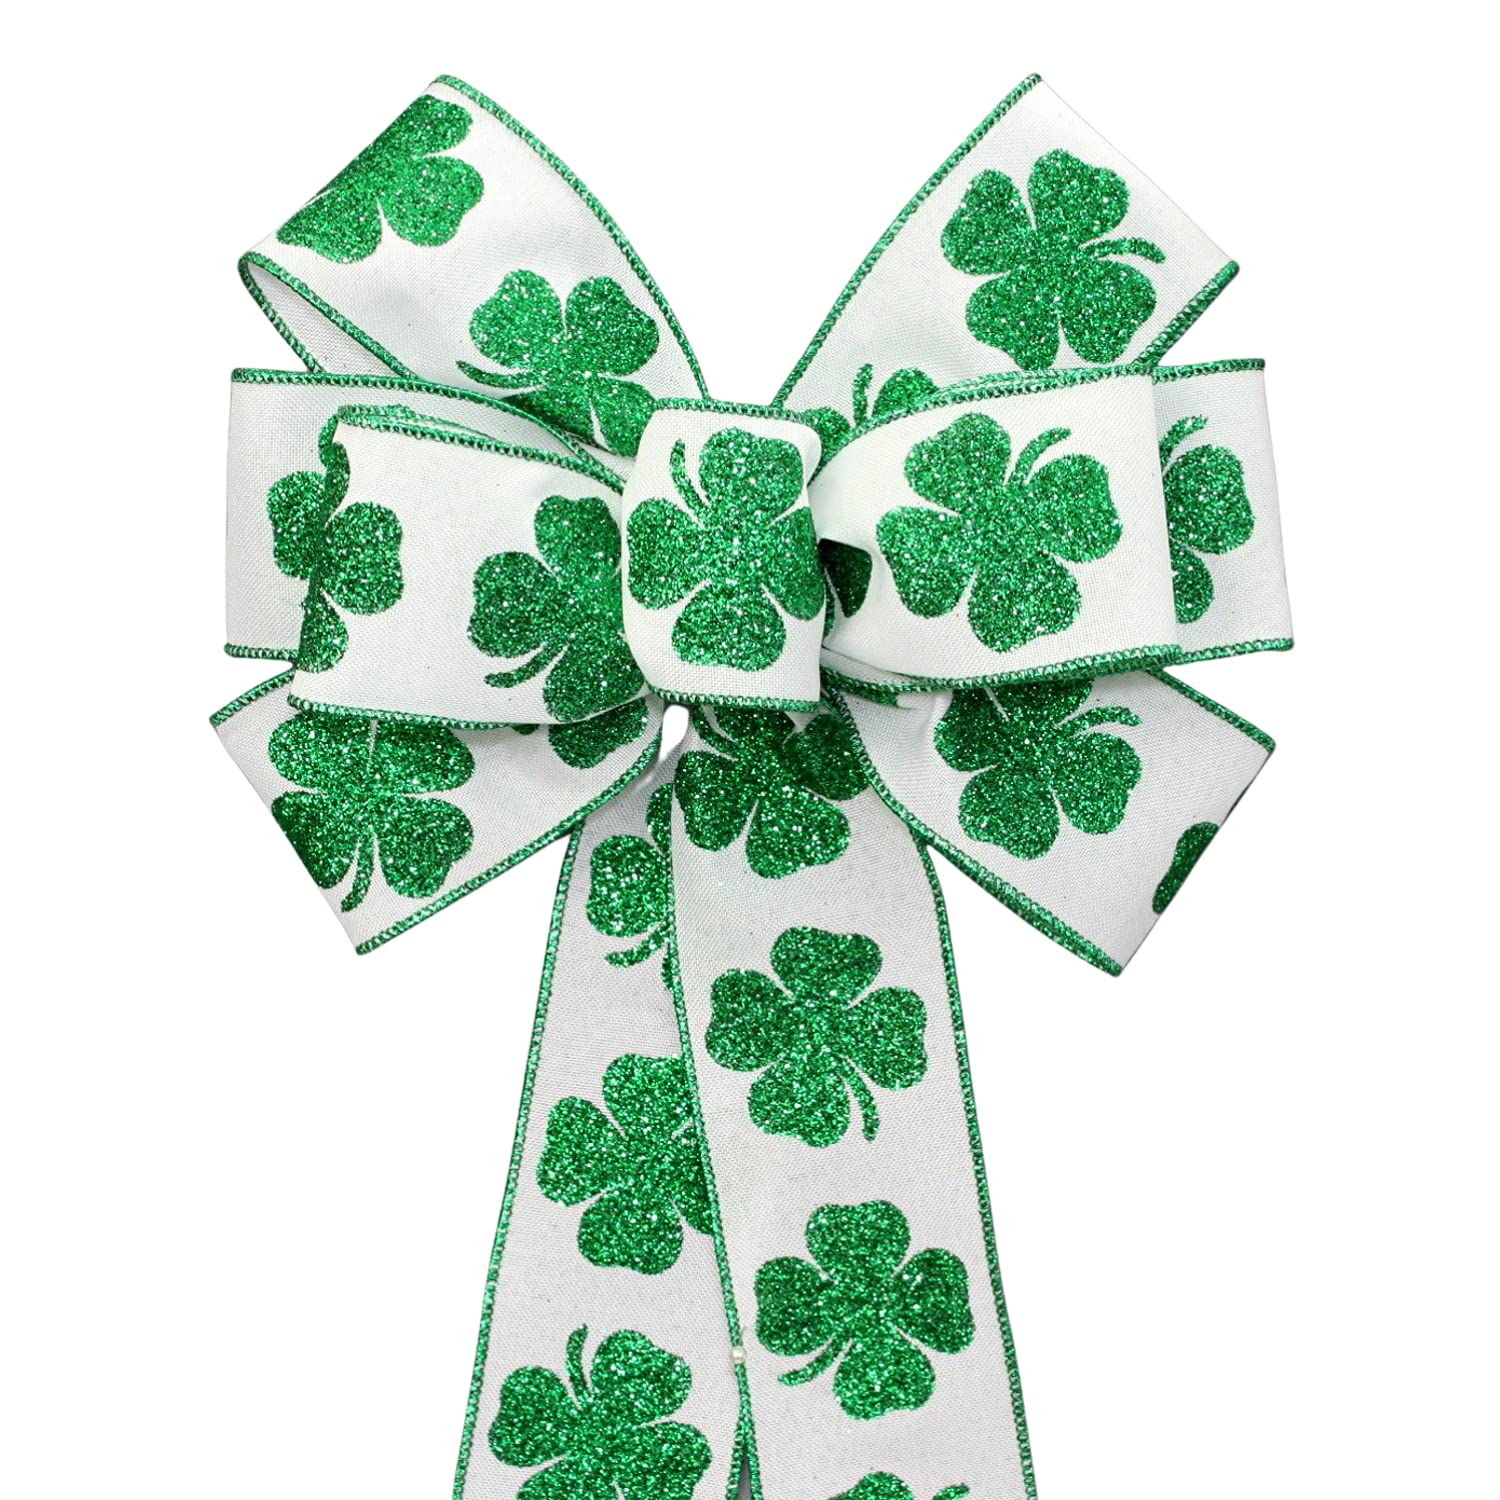 Bold Sparkle Shamrock St. Patrick's Day Size Opt We OFFer at National uniform free shipping cheap prices in 2 Bow Wreath